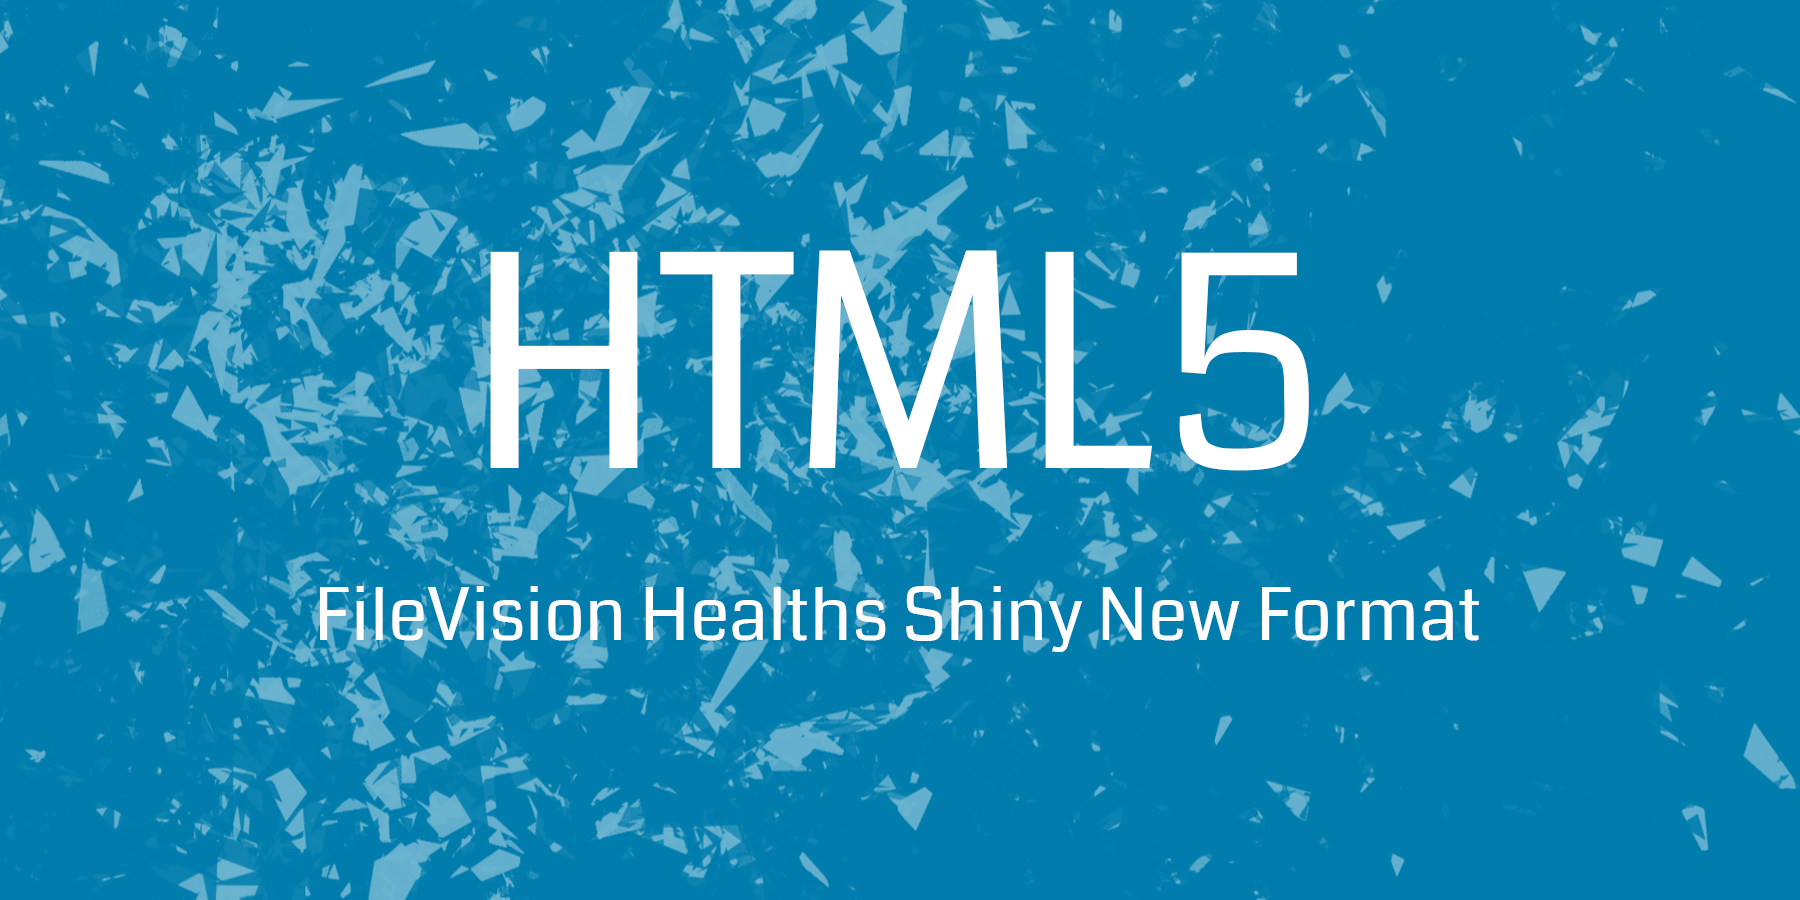 HTML5 – FileVision Health now on the web!